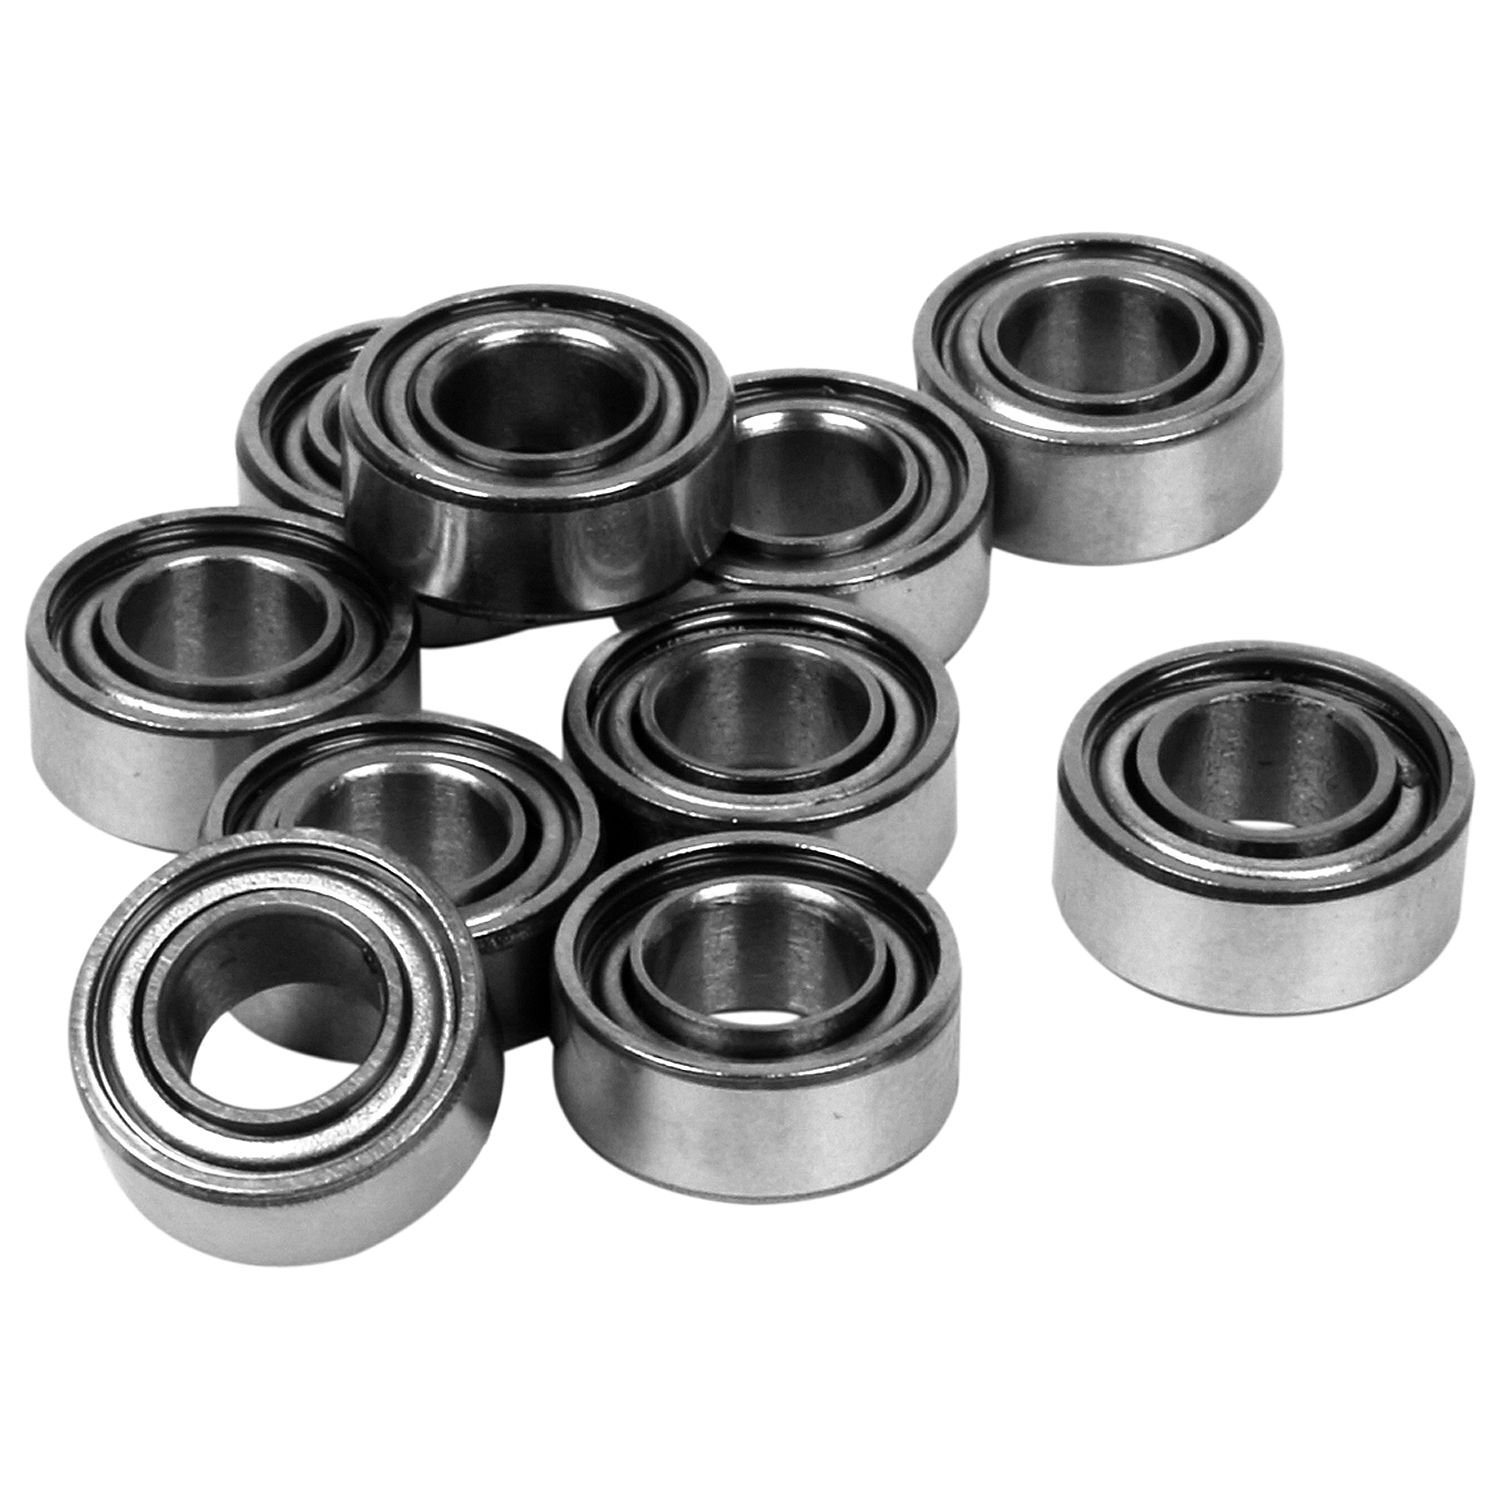 SODIAL(R) 10pcs Miniature Sealed Metal Shielded Metric Radial Ball Bearing Model: MR105 ZZ 5x10x4MM